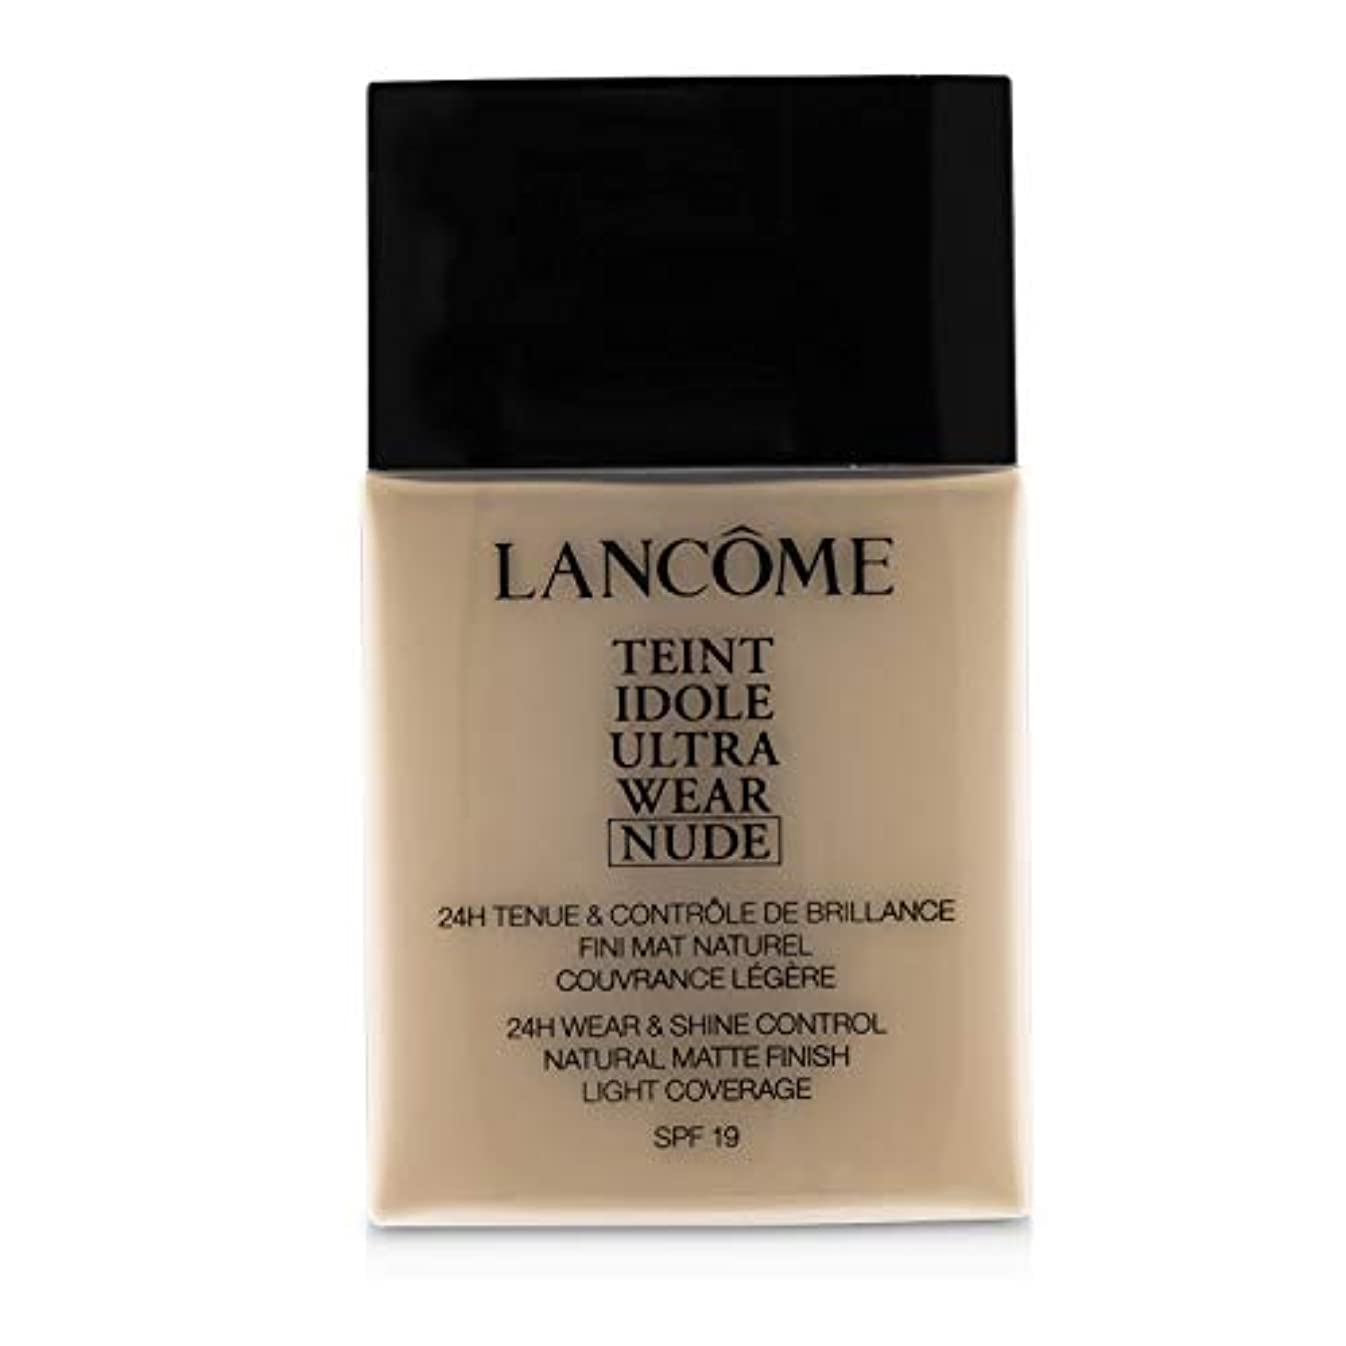 装置負荷パノラマランコム Teint Idole Ultra Wear Nude Foundation SPF19 - # 005 Beige Ivoire 40ml/1.3oz並行輸入品